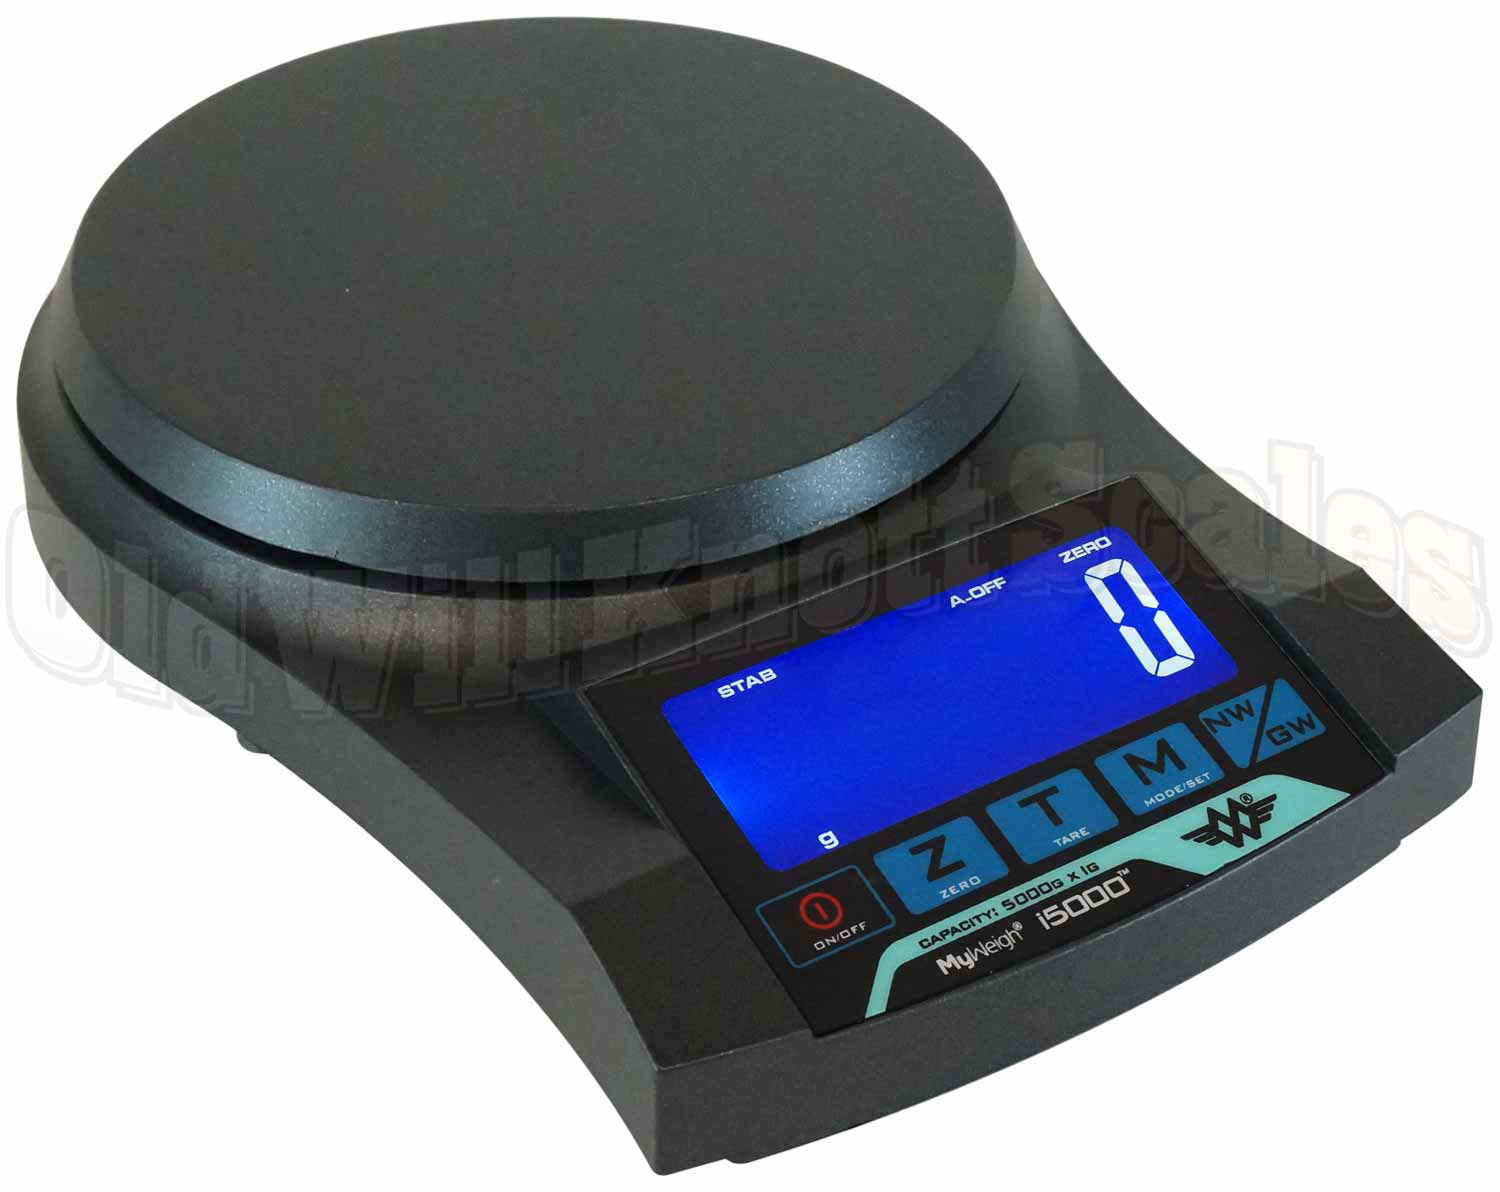 My Weigh - i5000 - Without Bowl